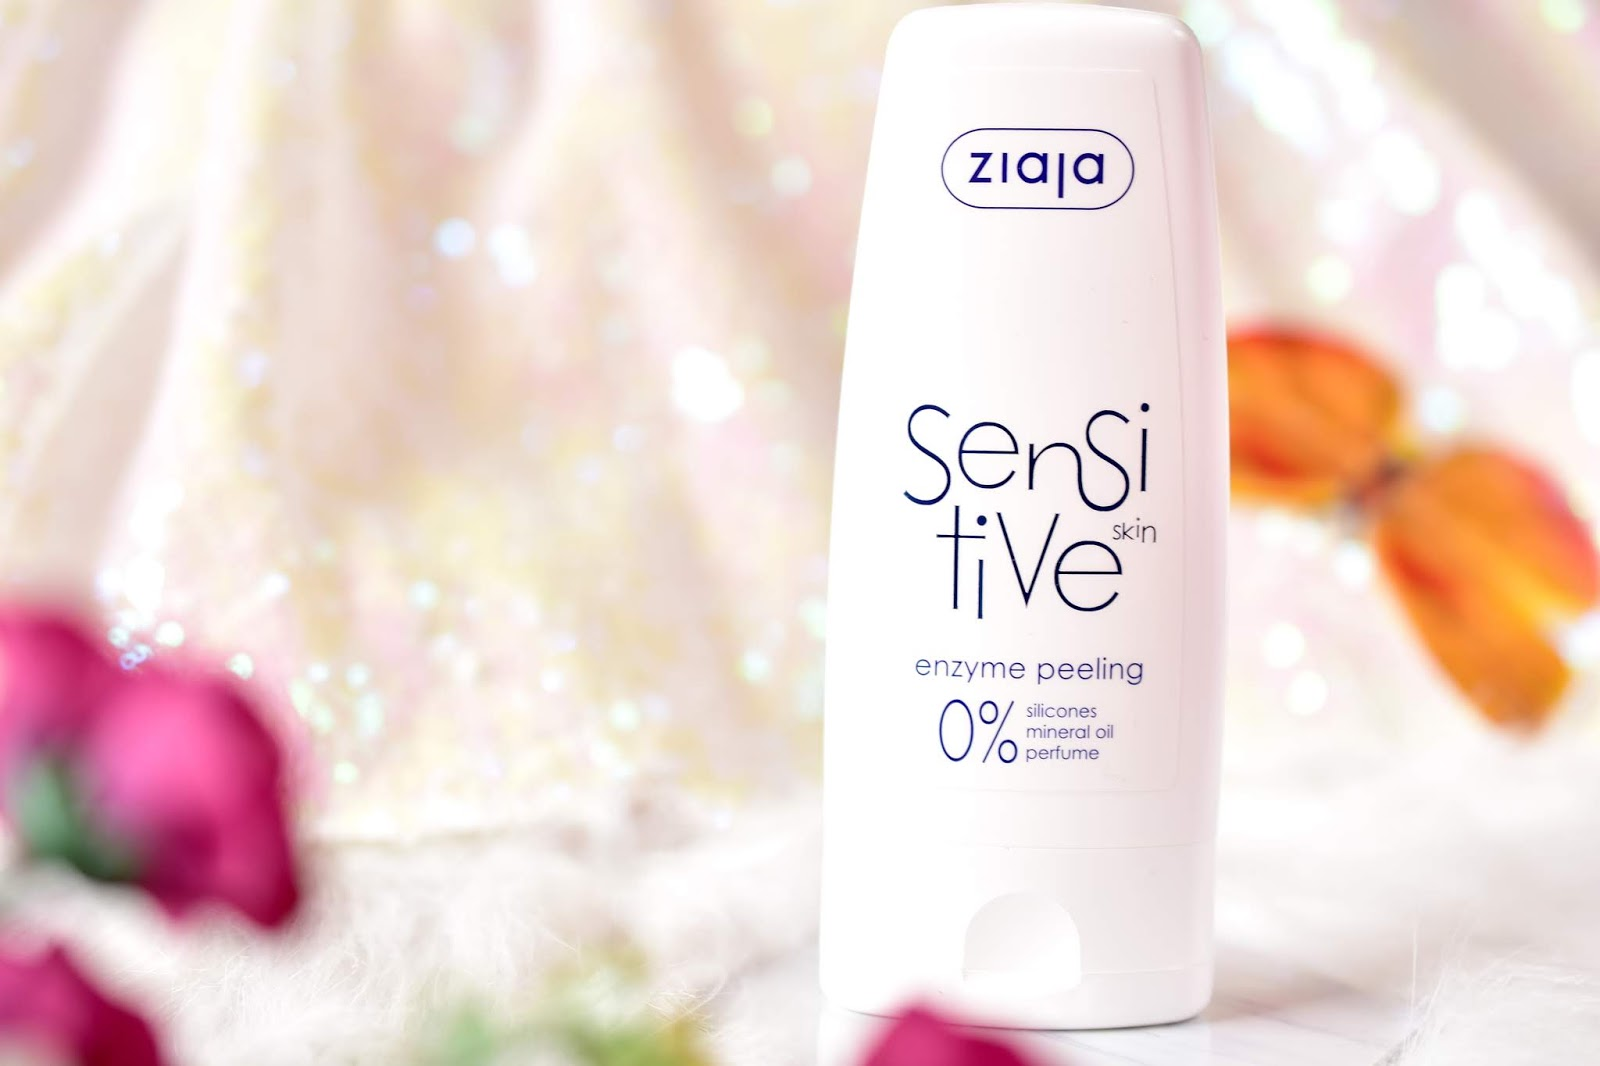 Ziaja Sensitive enzyme peeling